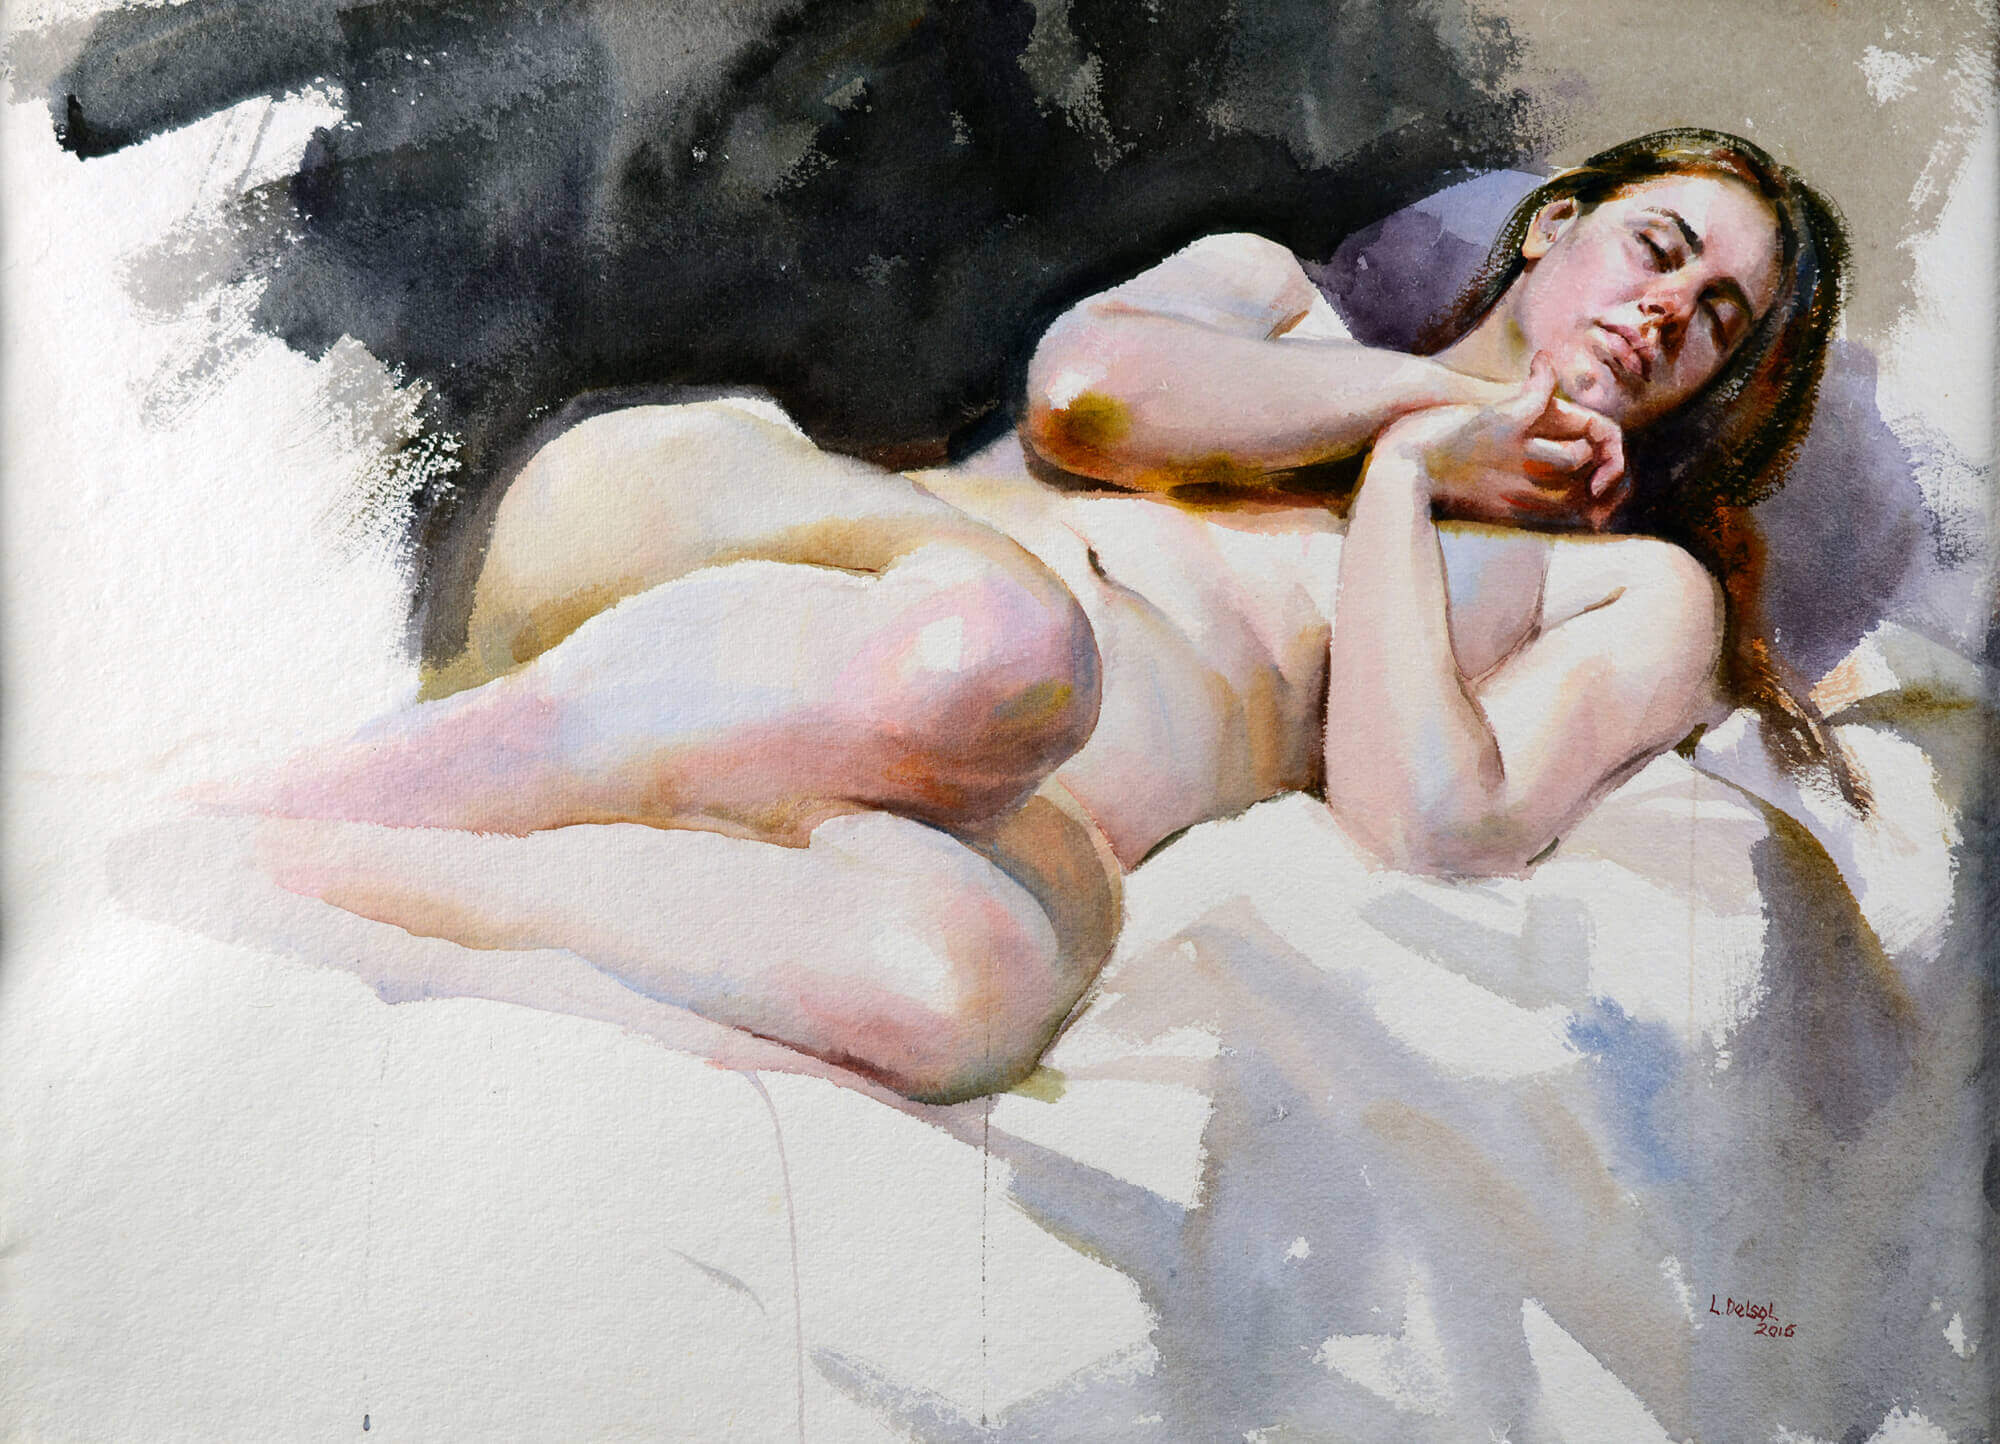 Figurative watercolor painting of a nude woman with hands clasped covering her chest with her head on a purple pillow